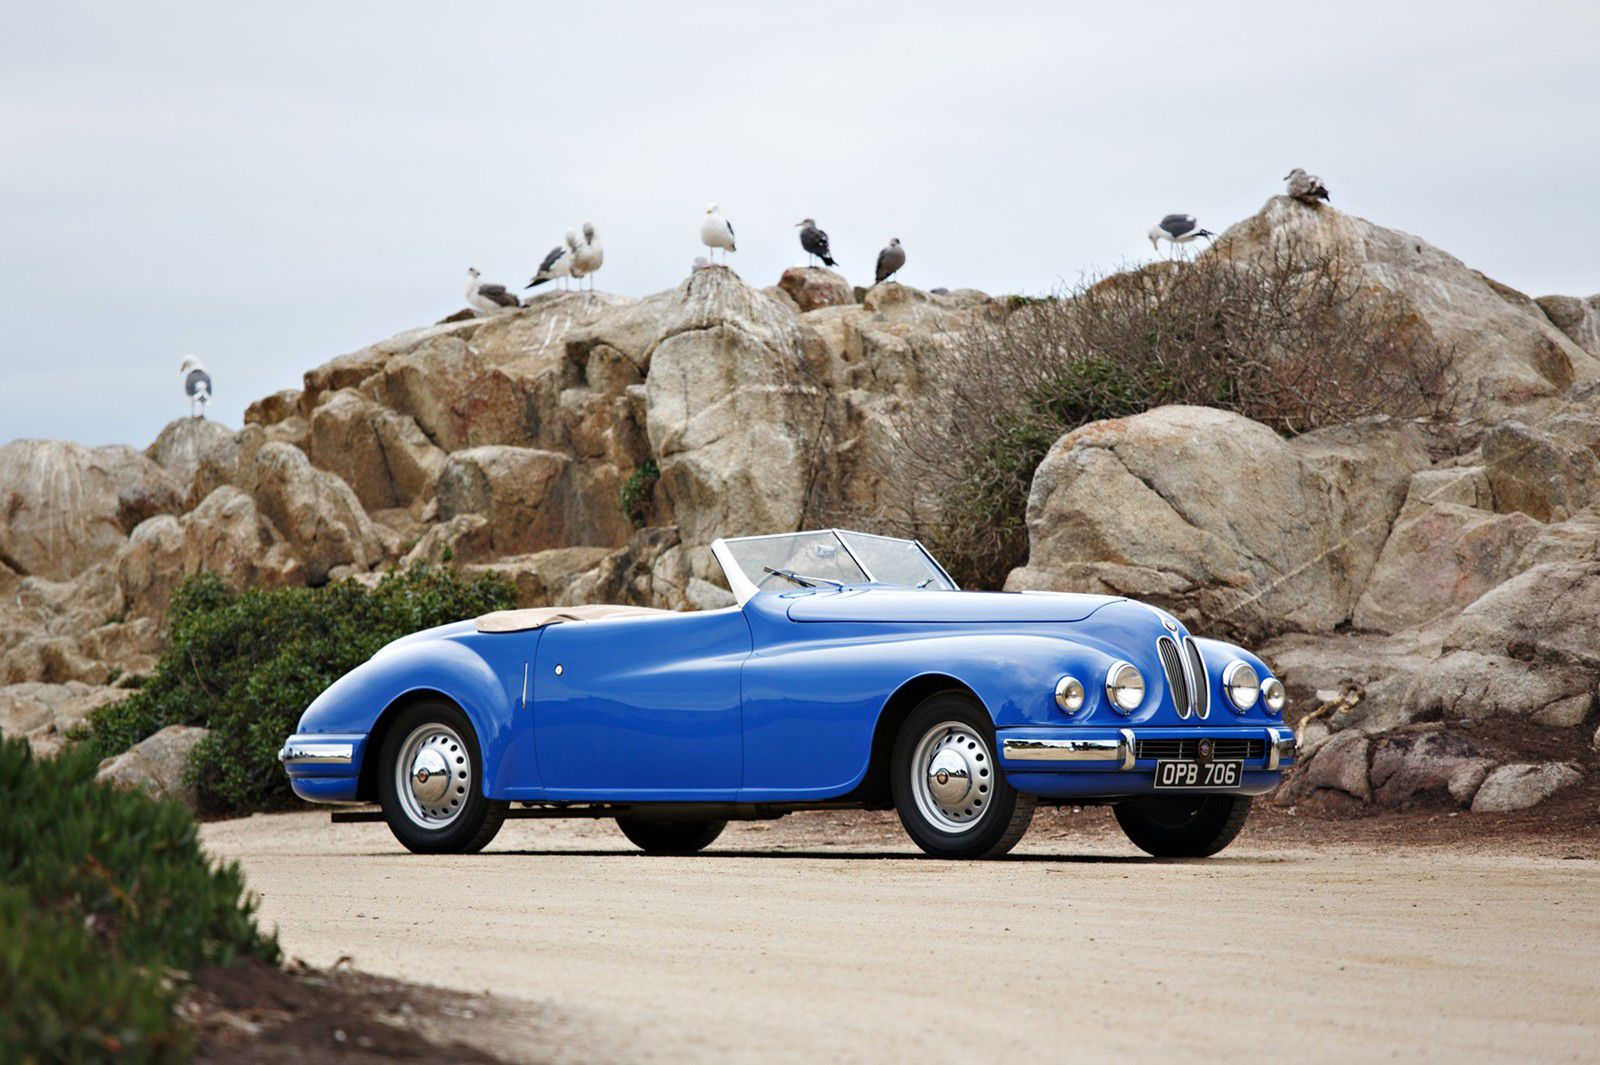 VOITURES DE LEGENDE (1159) : BRISTOL  402 - 1949